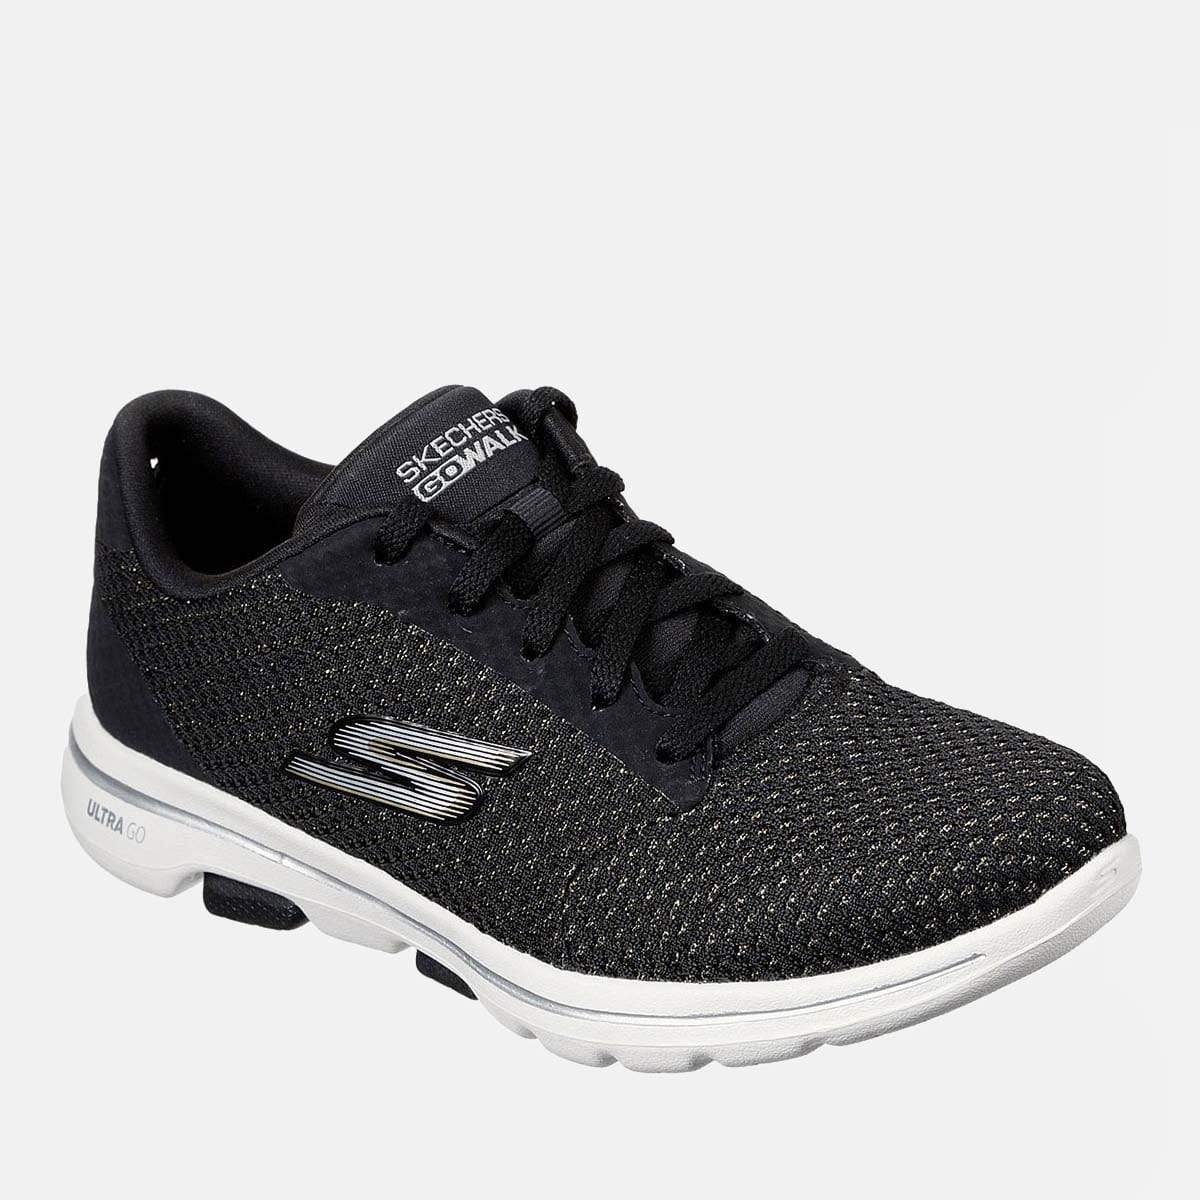 Skechers Footwear Go Walk 5 Debut 124021 Black Gold